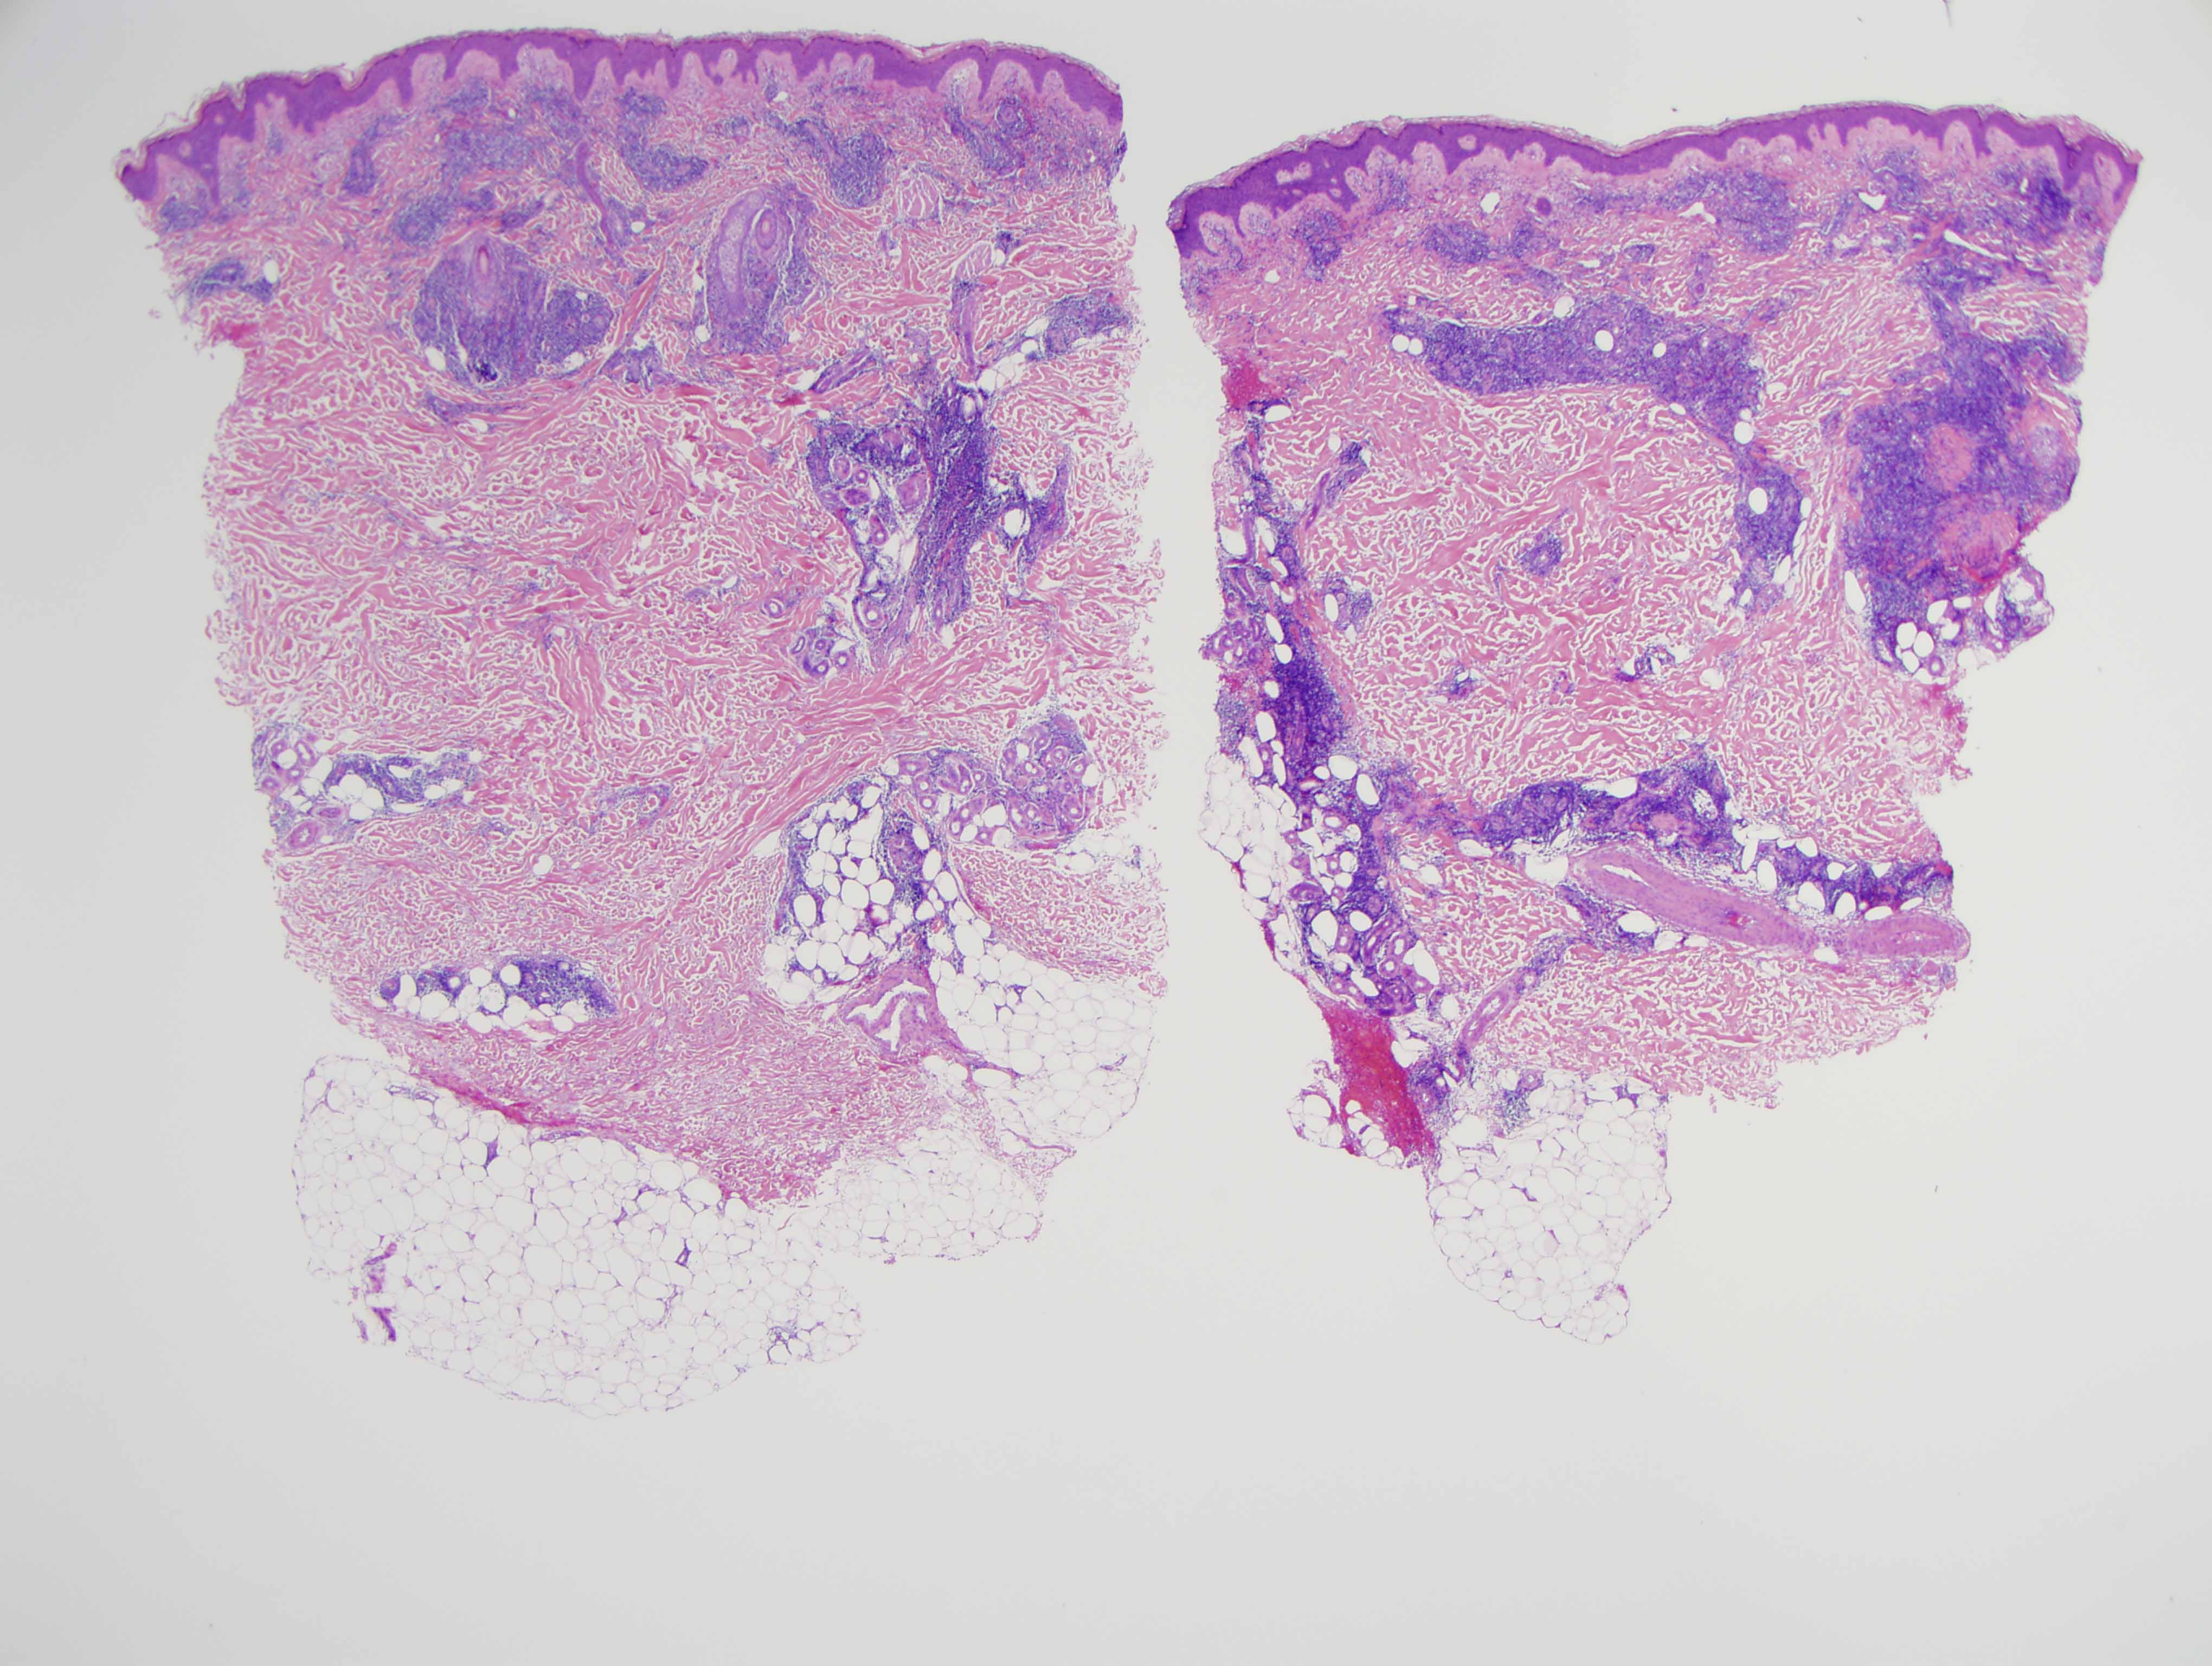 Slide 1: The biopsy shows a very extensive lymphocytic infiltrate within the dermis involving the superficial and deep dermis with subcutaneous extension.